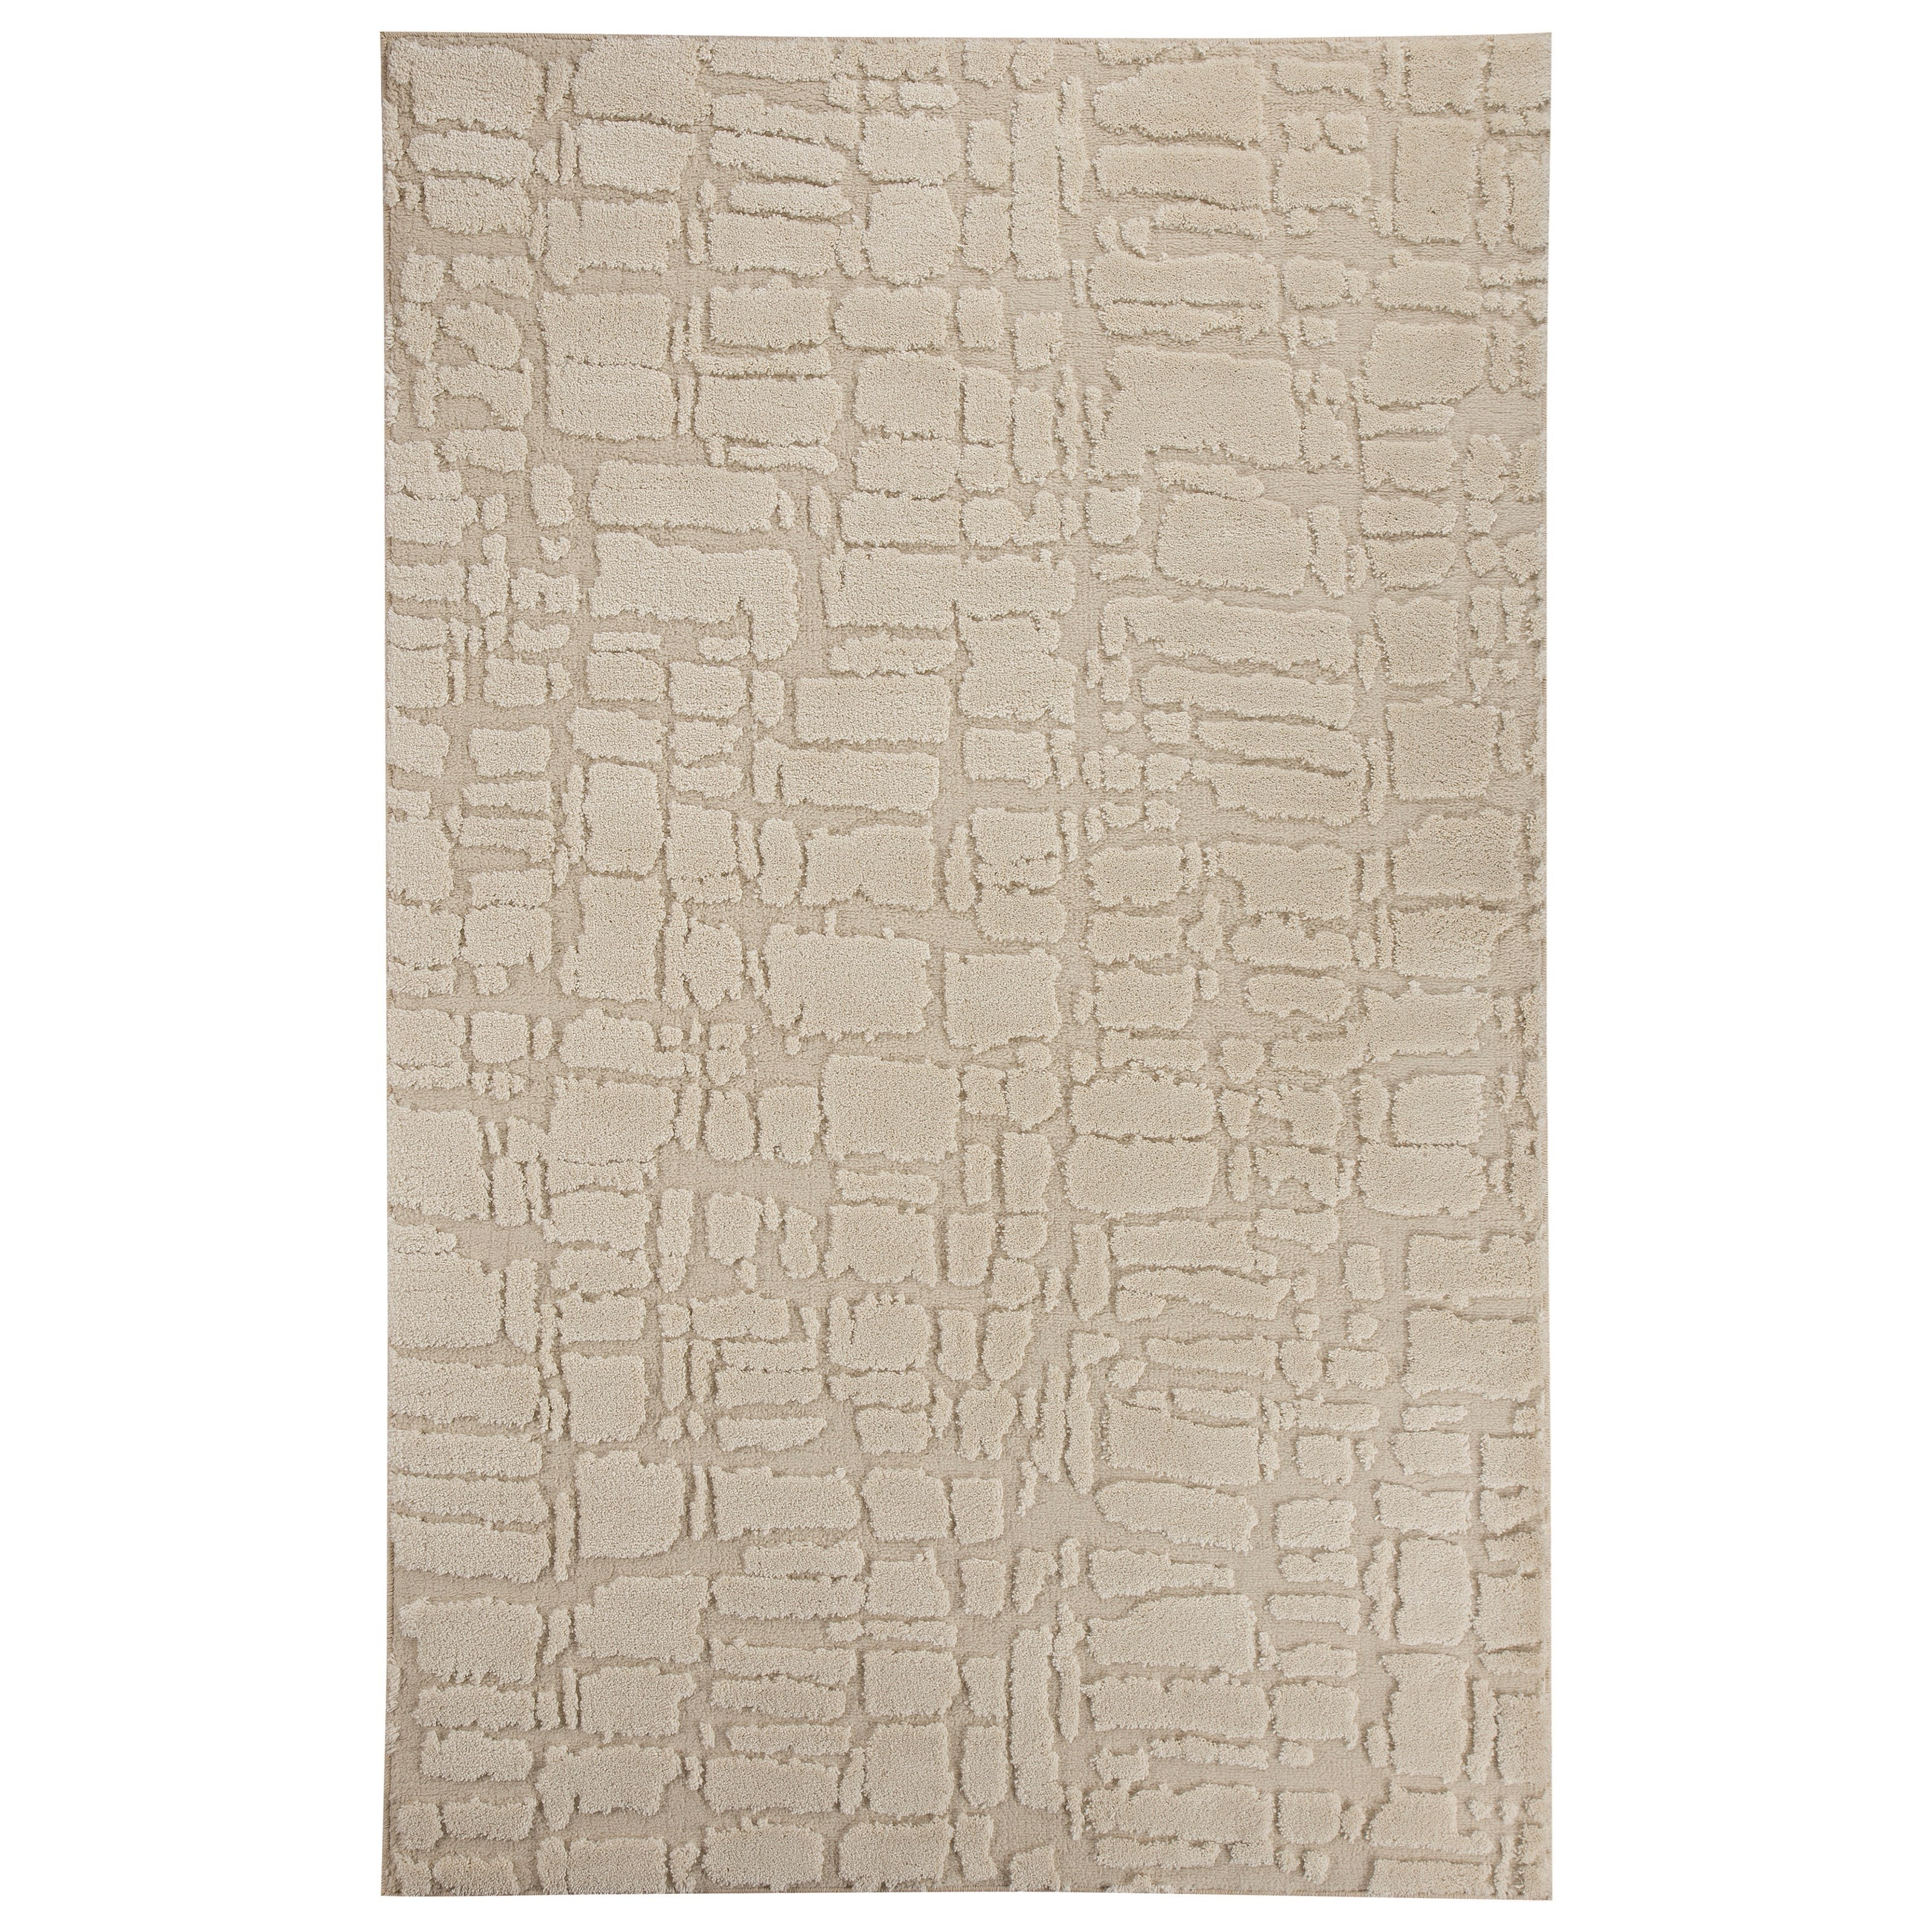 Signature Design by Ashley Contemporary Area Rugs Dugan Cream/Taupe Large Rug - Item Number: R401131